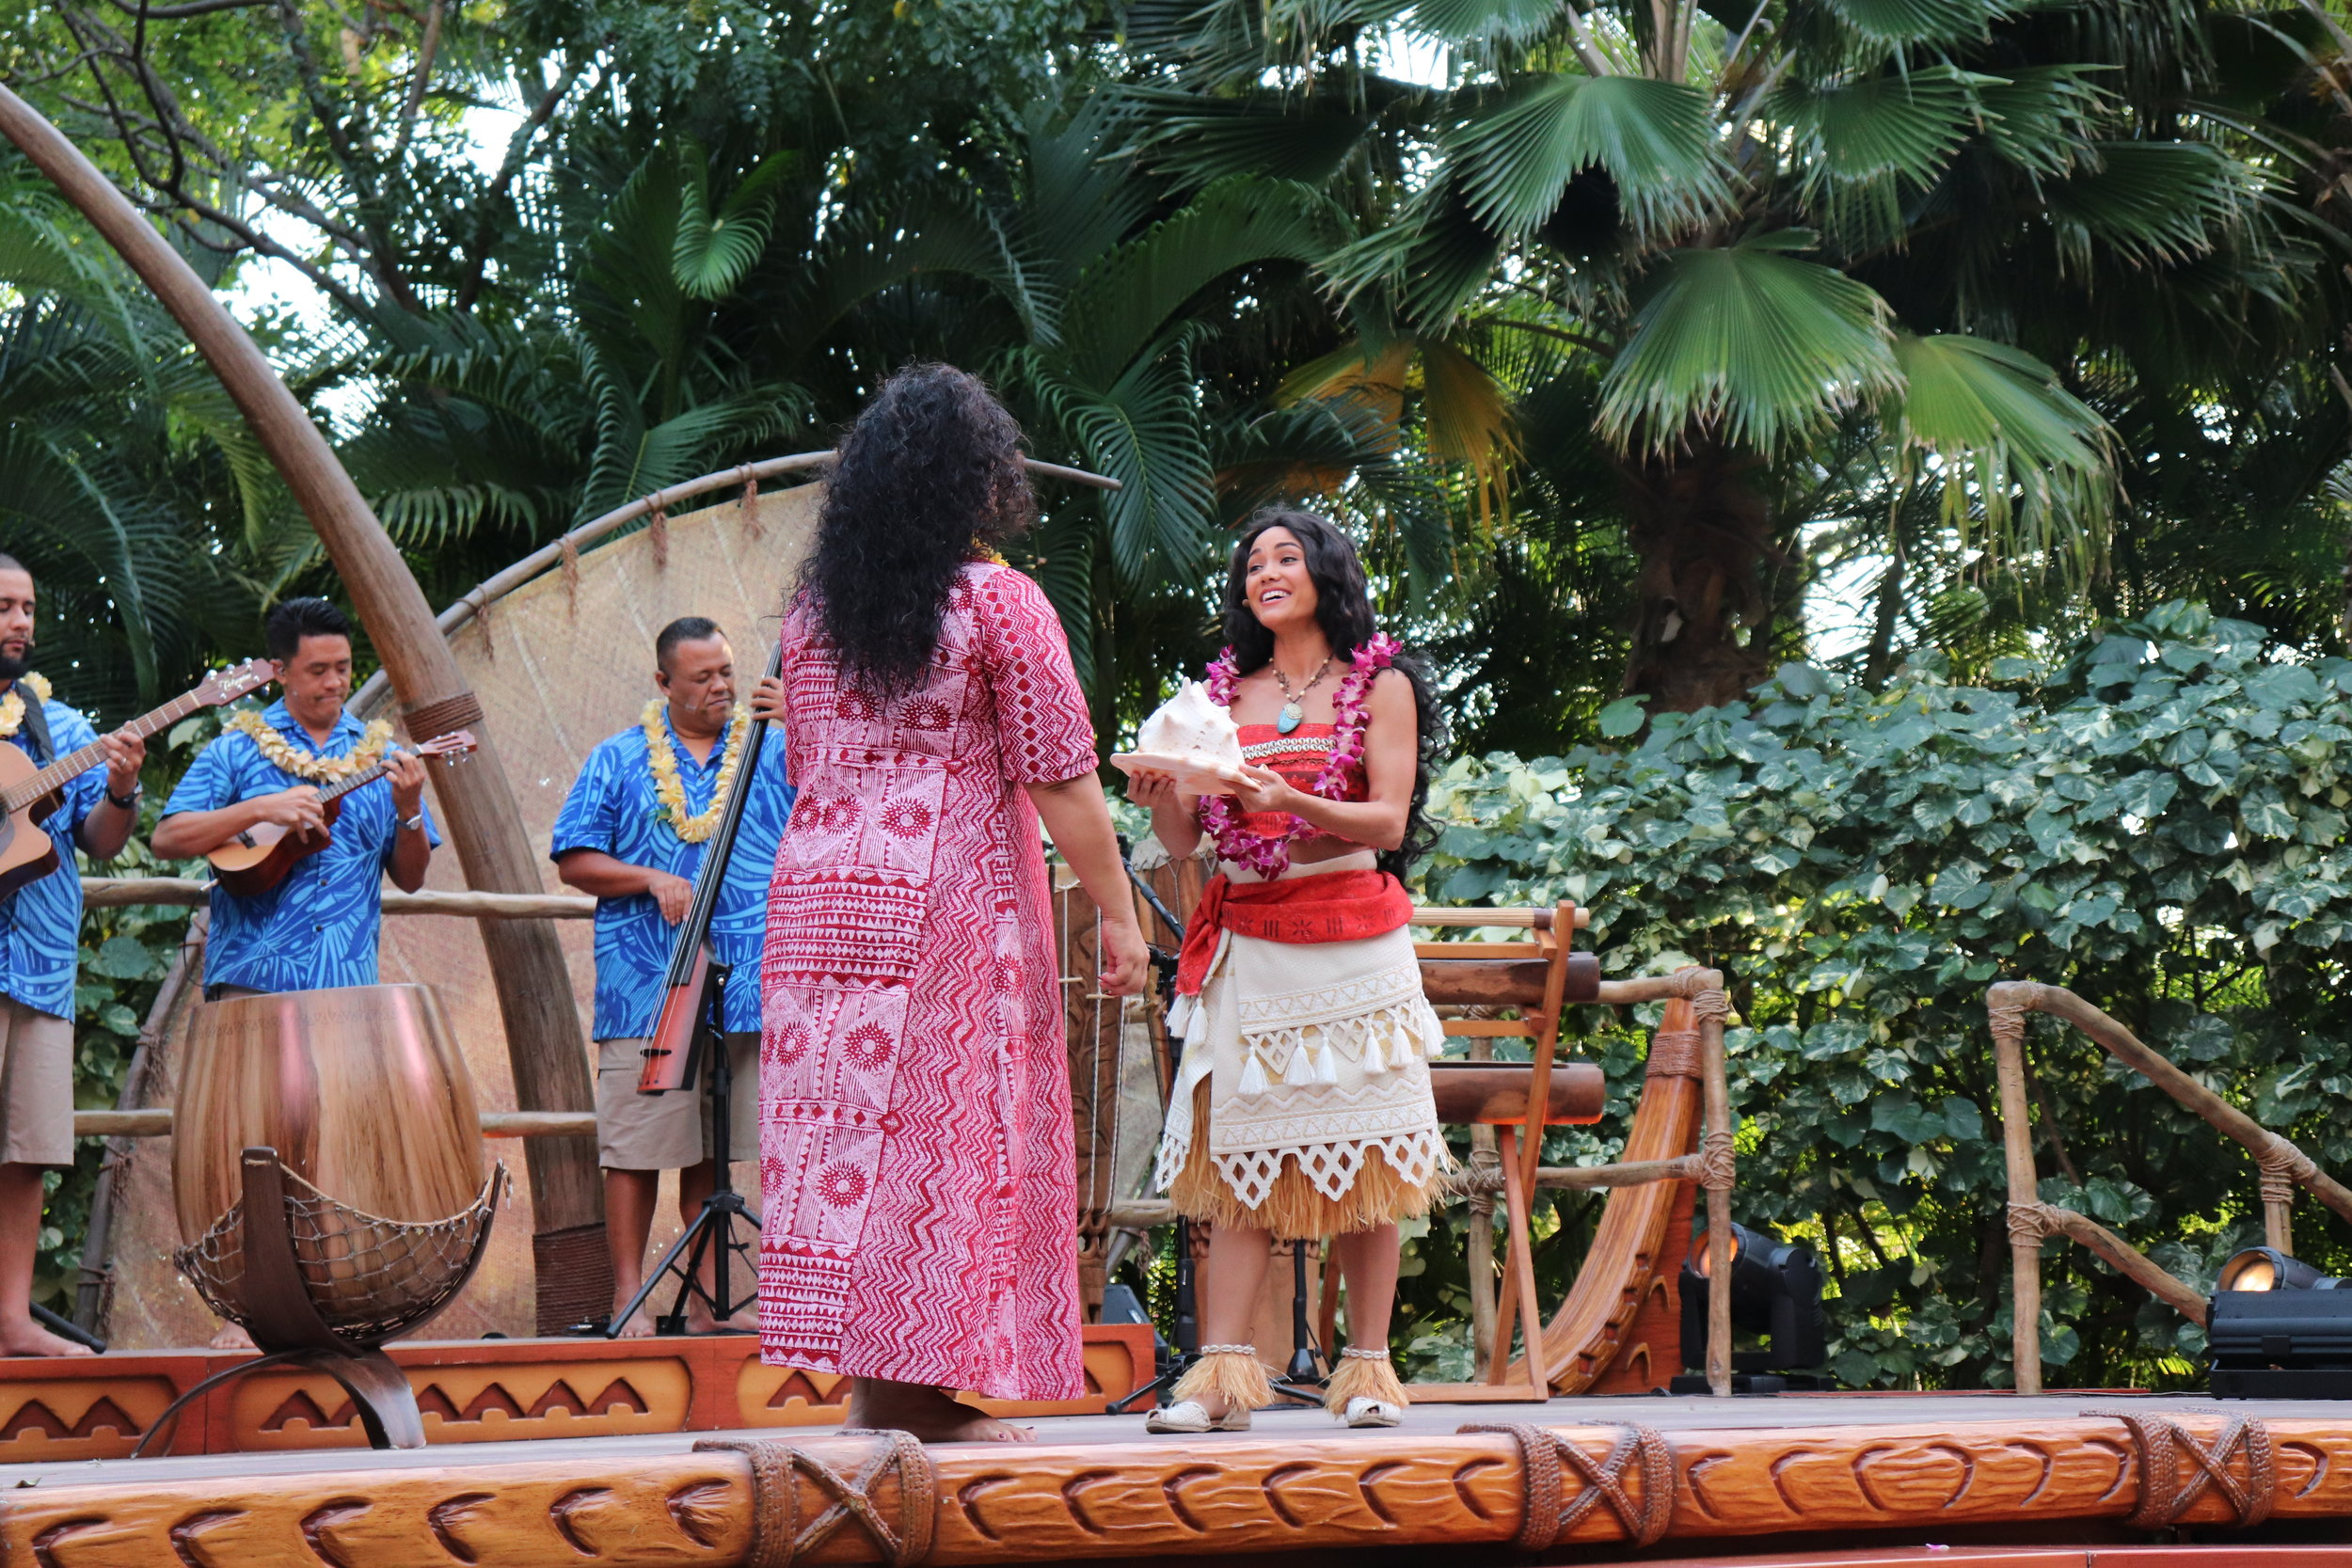 Moana welcoming Aunty and everyone to the Luau.